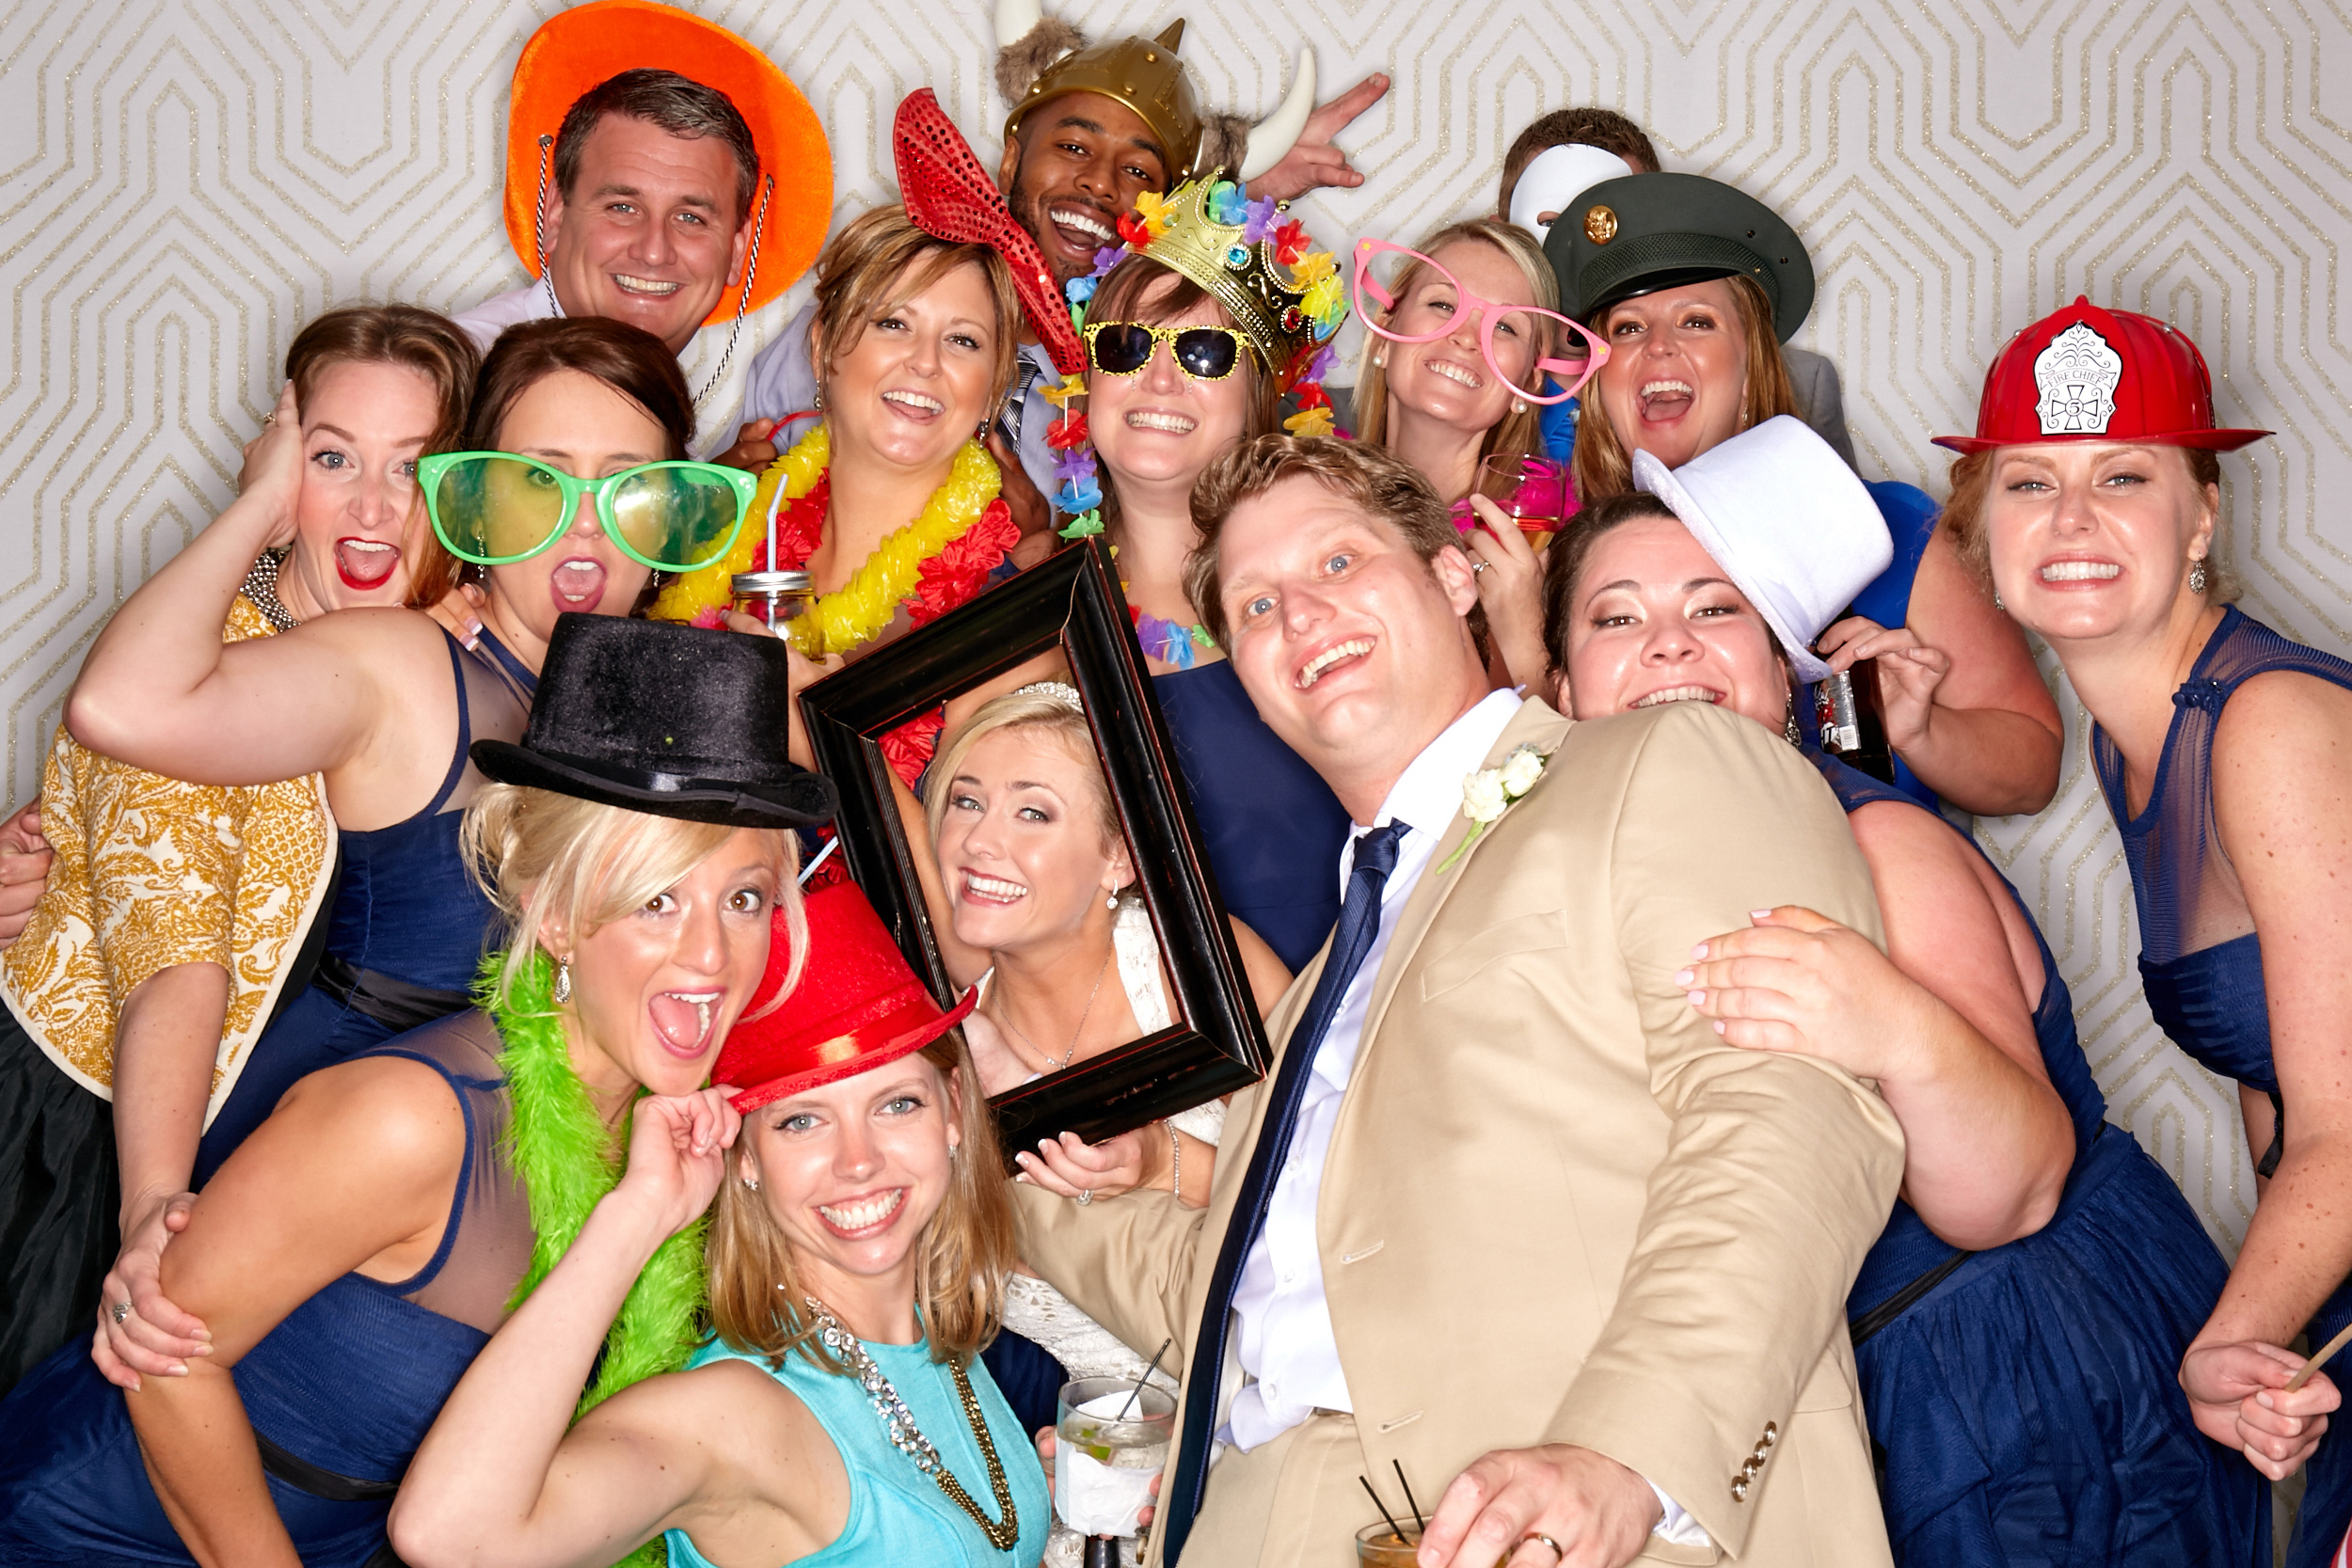 louisville-photo-booth-102.jpg